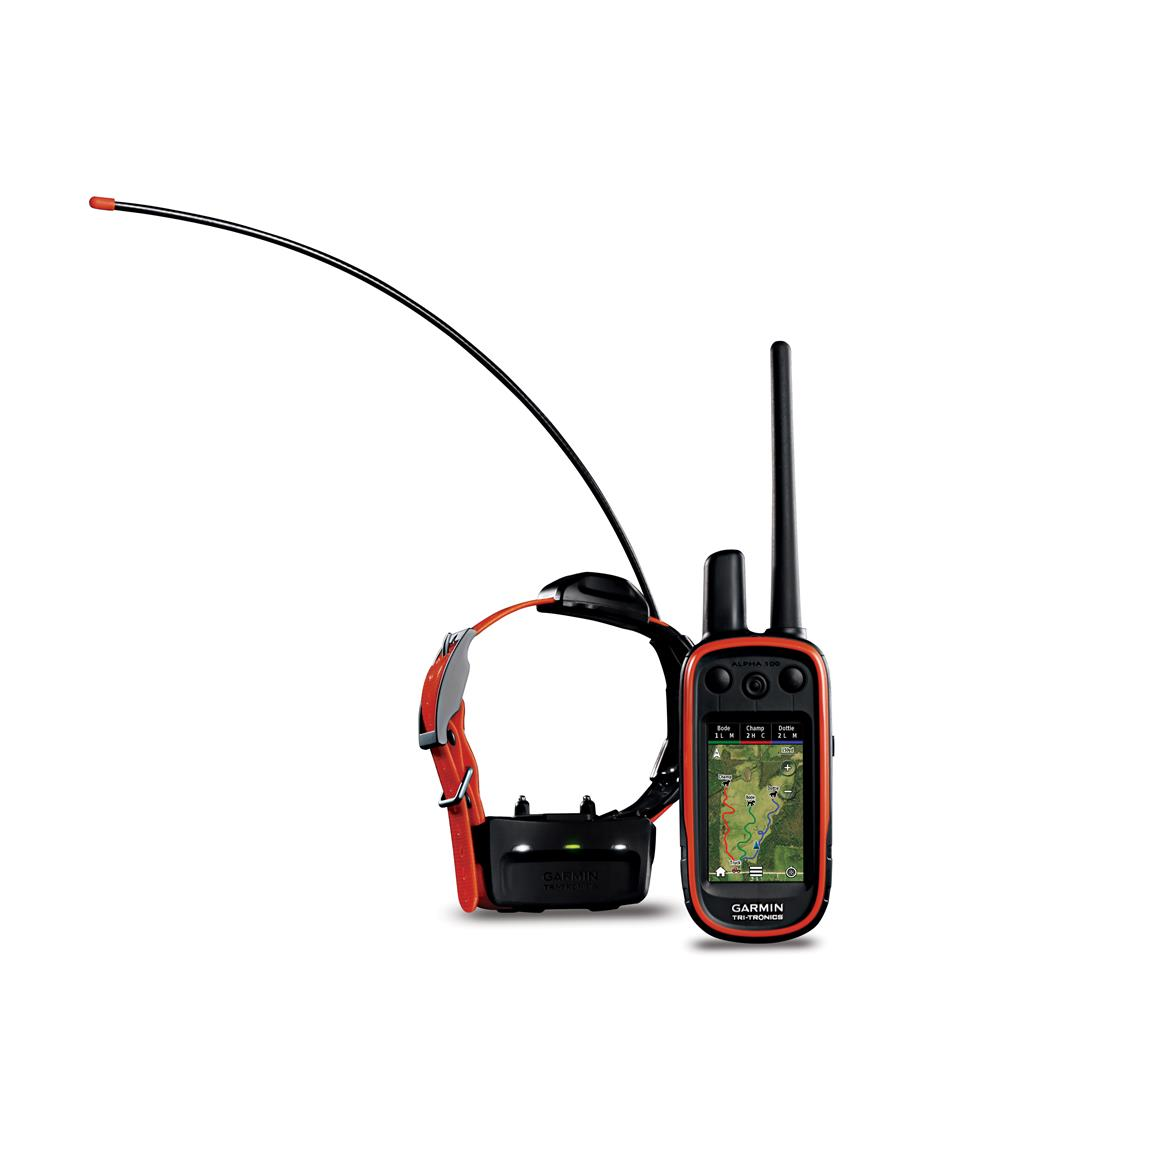 Garmin Alpha 100 Tt 15 Dog Training And Tracking System 010 50